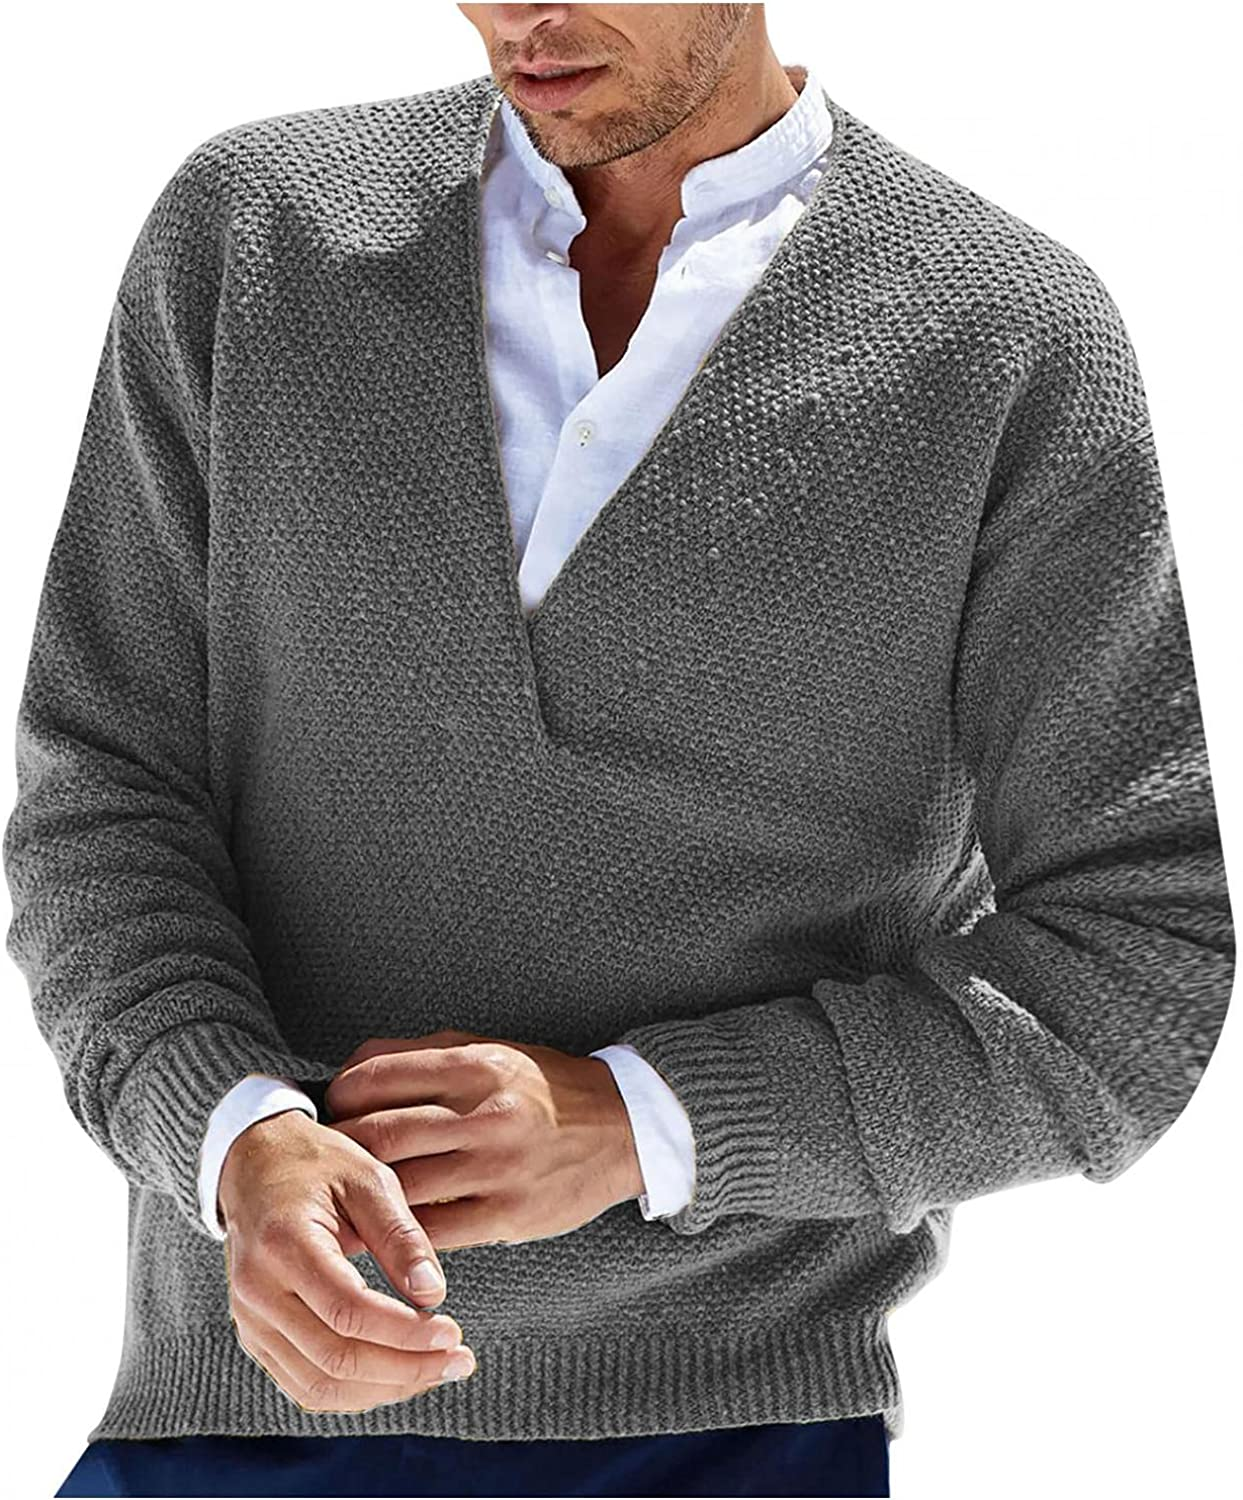 LEIYAN Mens Cable Knit Pullover Sweater Casual Long Sleeve V-Neck Winter Slim Fit Thermal Cardigan Knitwear